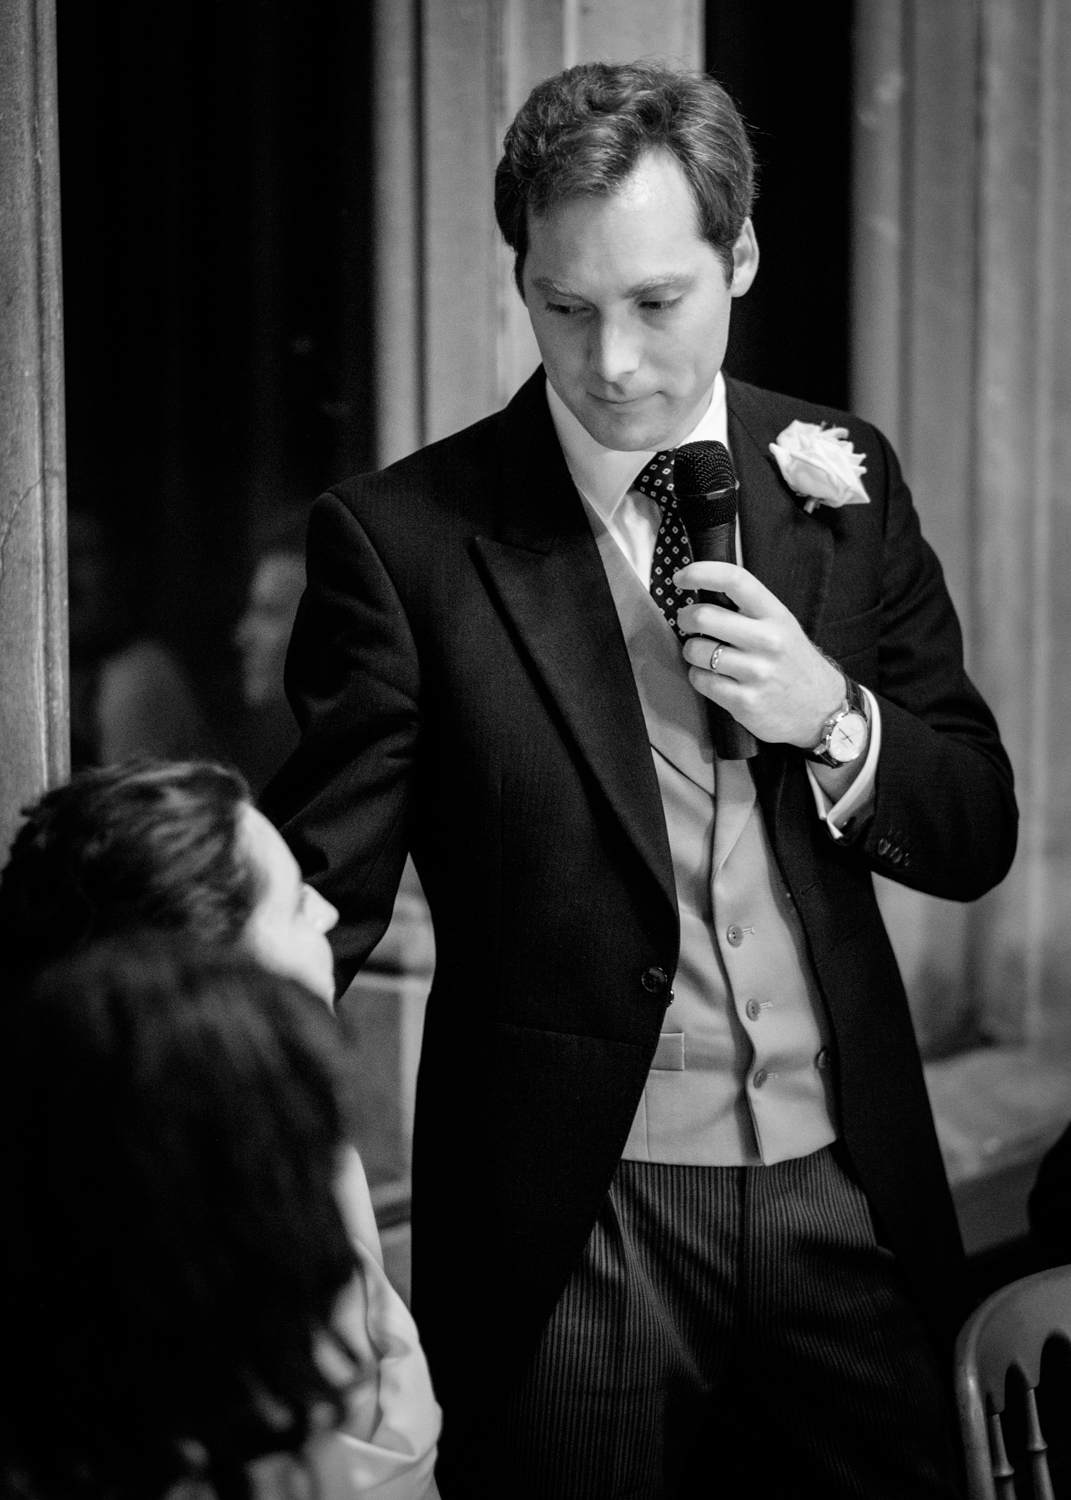 Weddding Photographer Rupert Marlow photograph of the groom looking at bride